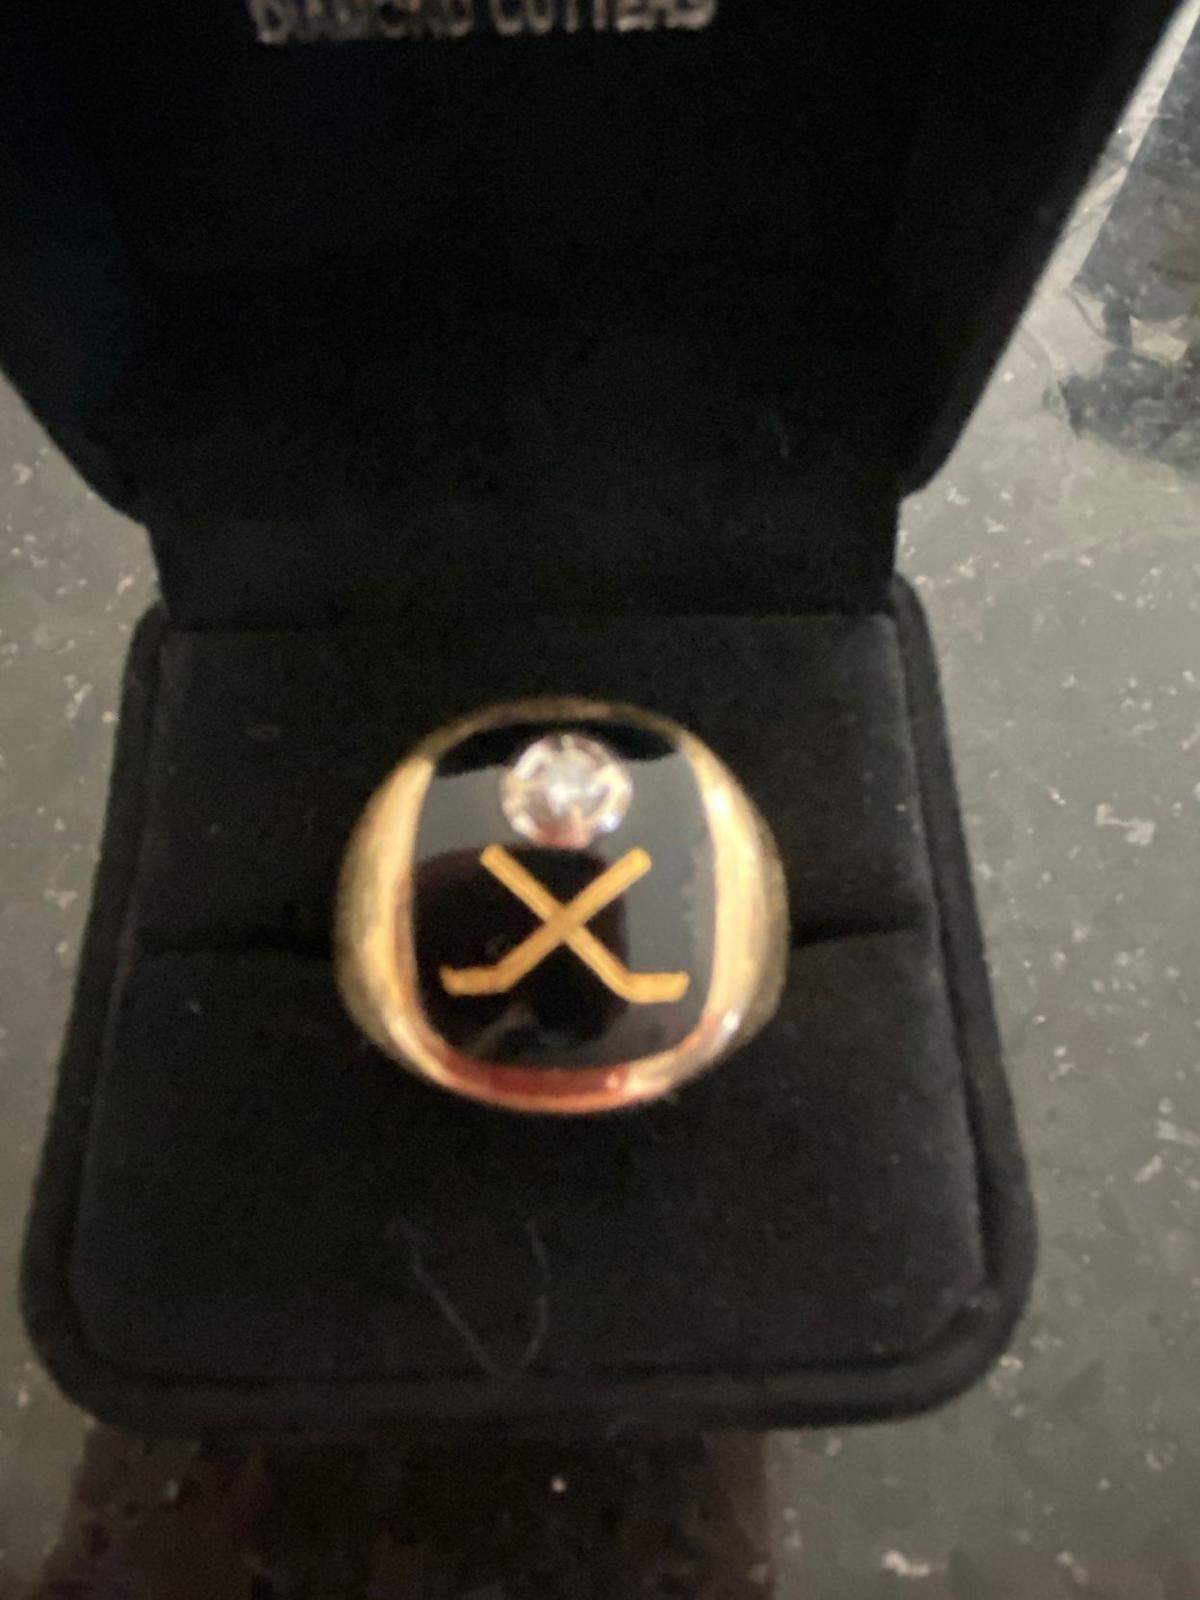 Mike-Robitaille-sabres-bisons-ring-submitted